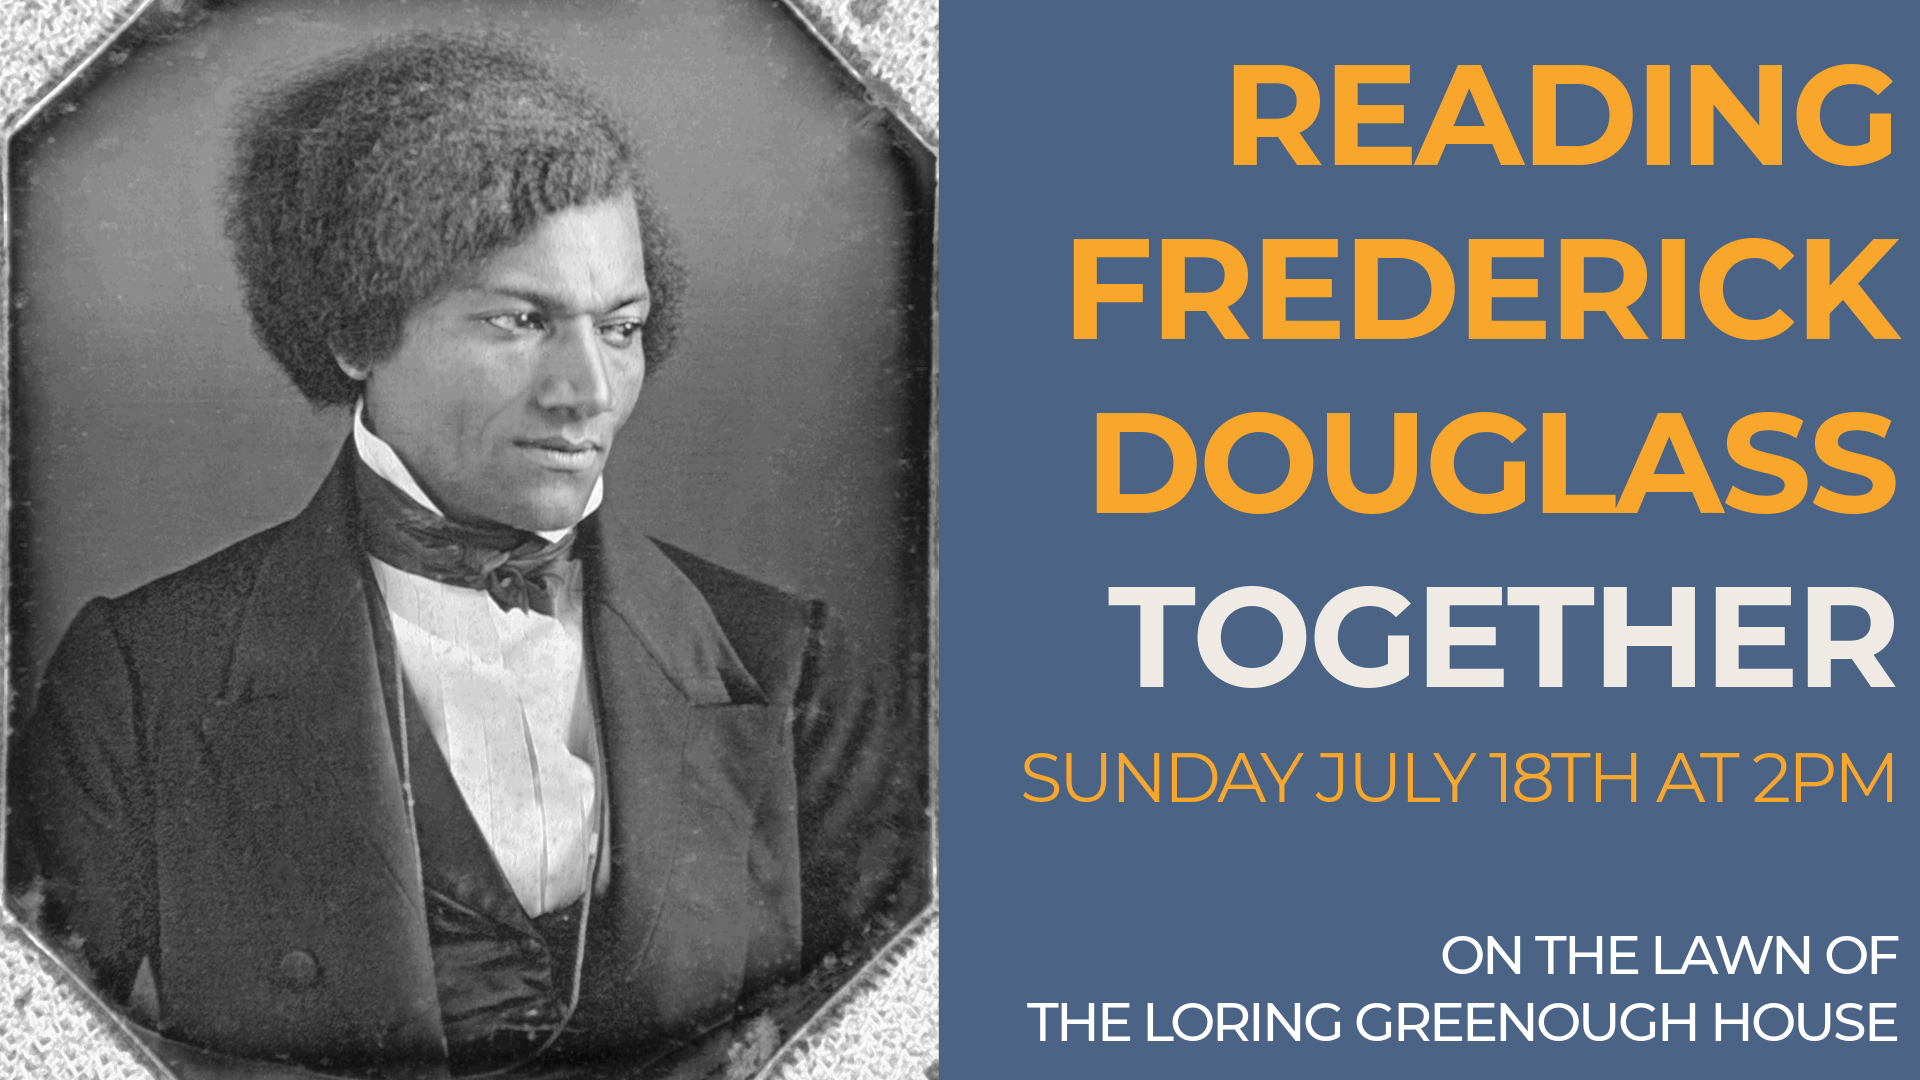 Reading Frederick Douglass Together